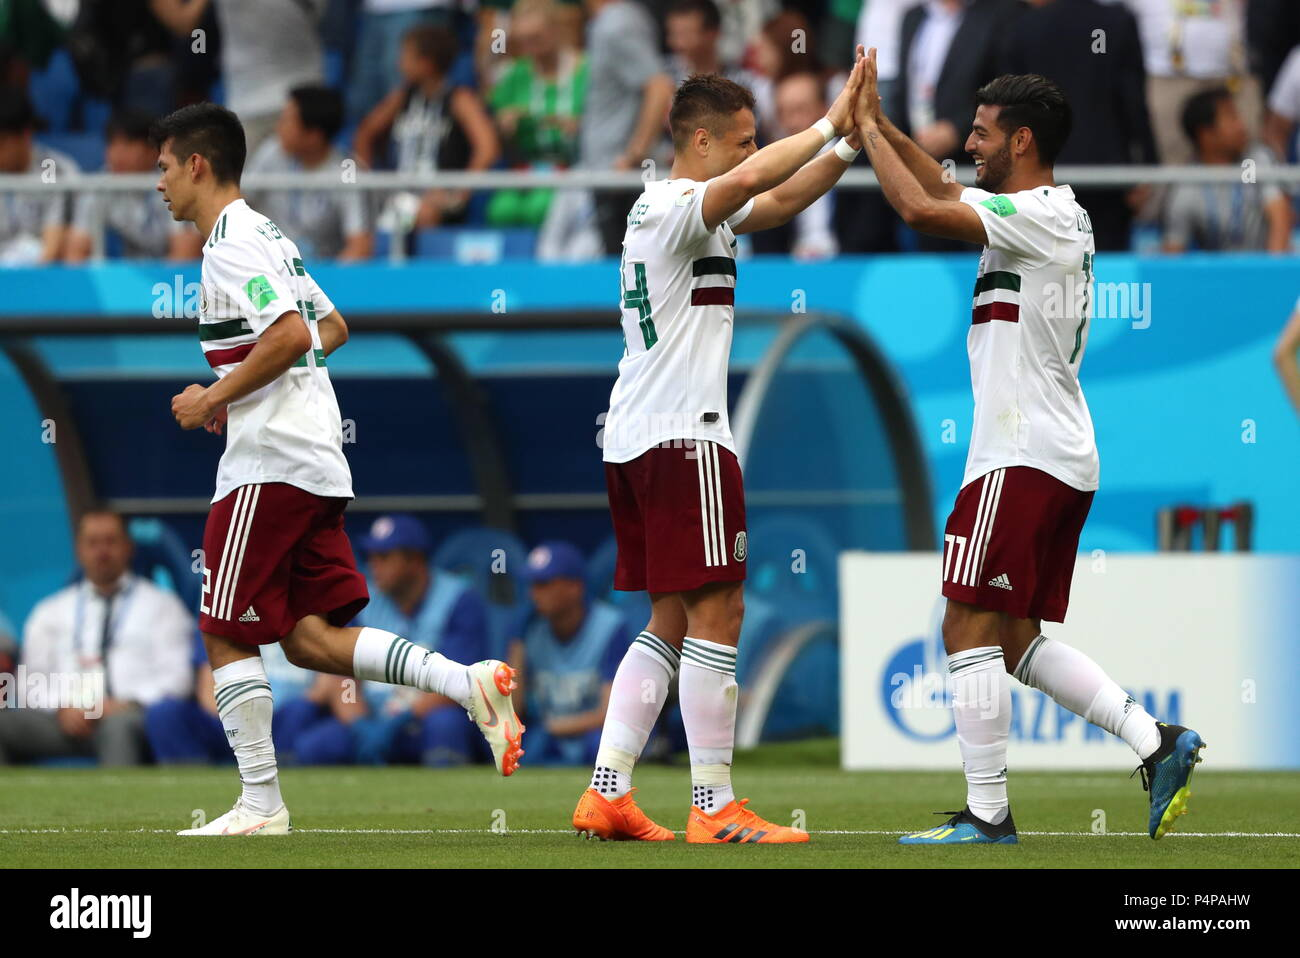 Rostov On Don, Russia. 23rd June, 2018. ROSTOV-ON-DON, RUSSIA - JUJNE 23, 2018: Mexico's Hirving Lozano, Javier Hernandez, and Carlos Vela (L-R) celebrate scoring in their 2018 FIFA World Cup Group F football match against South Korea at Rostov Arena Stadium. Sergei Savostyanov/TASS Credit: ITAR-TASS News Agency/Alamy Live News - Stock Image